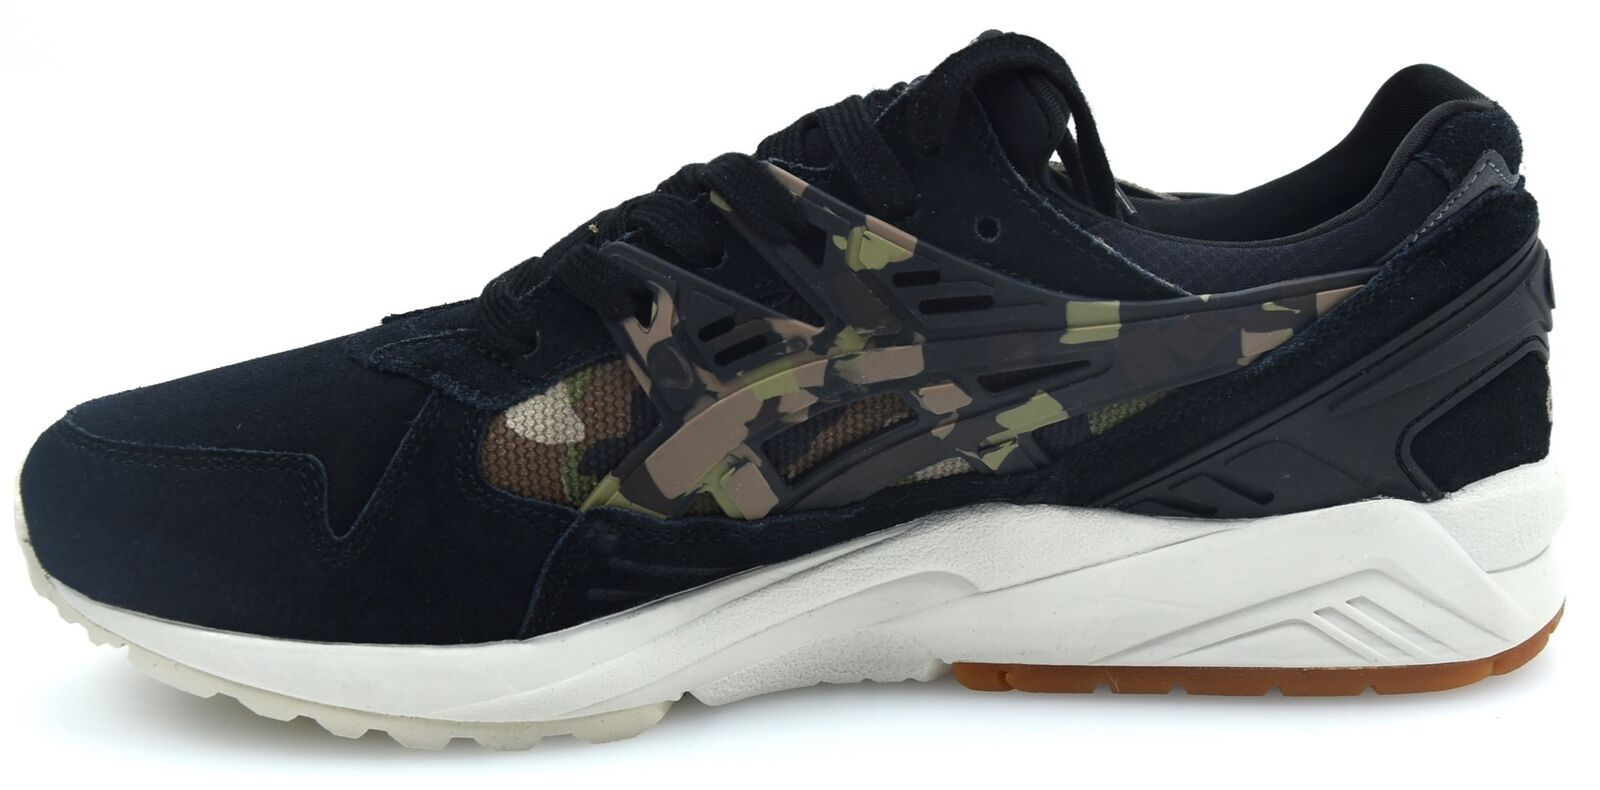 ASICS SHOES MAN FREE TIME CASUAL SNEAKER SHOES ASICS SUEDE CODE HL7C1 GEL-KAYANO TRAINER c12068